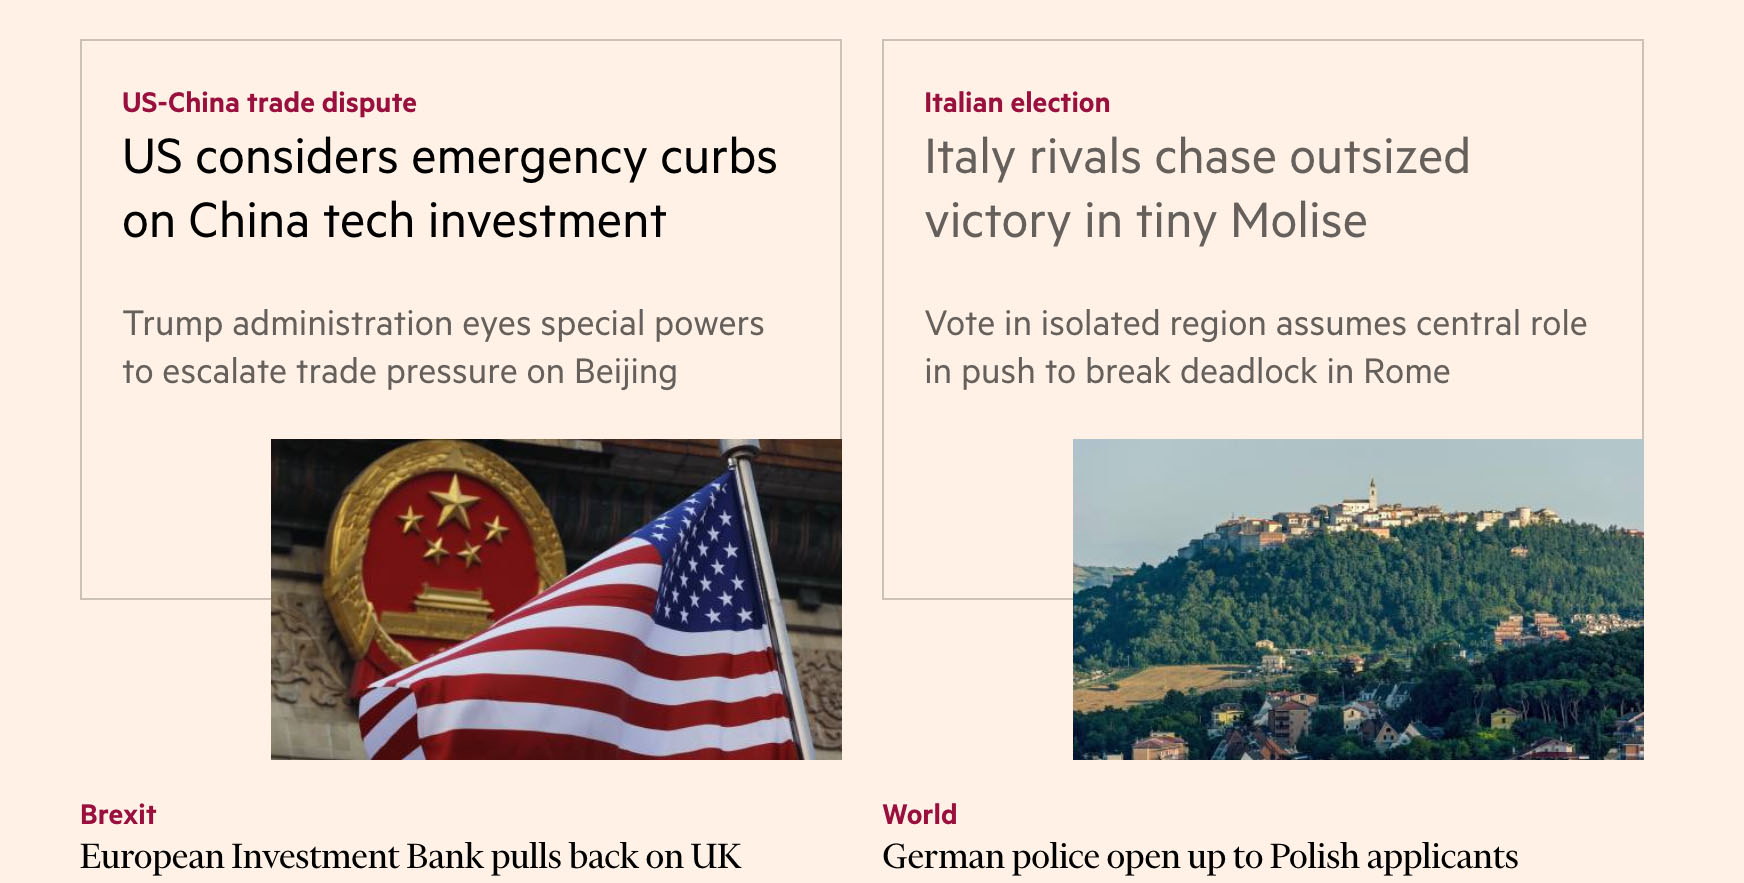 Le elezioni in Molise sul Financial Times